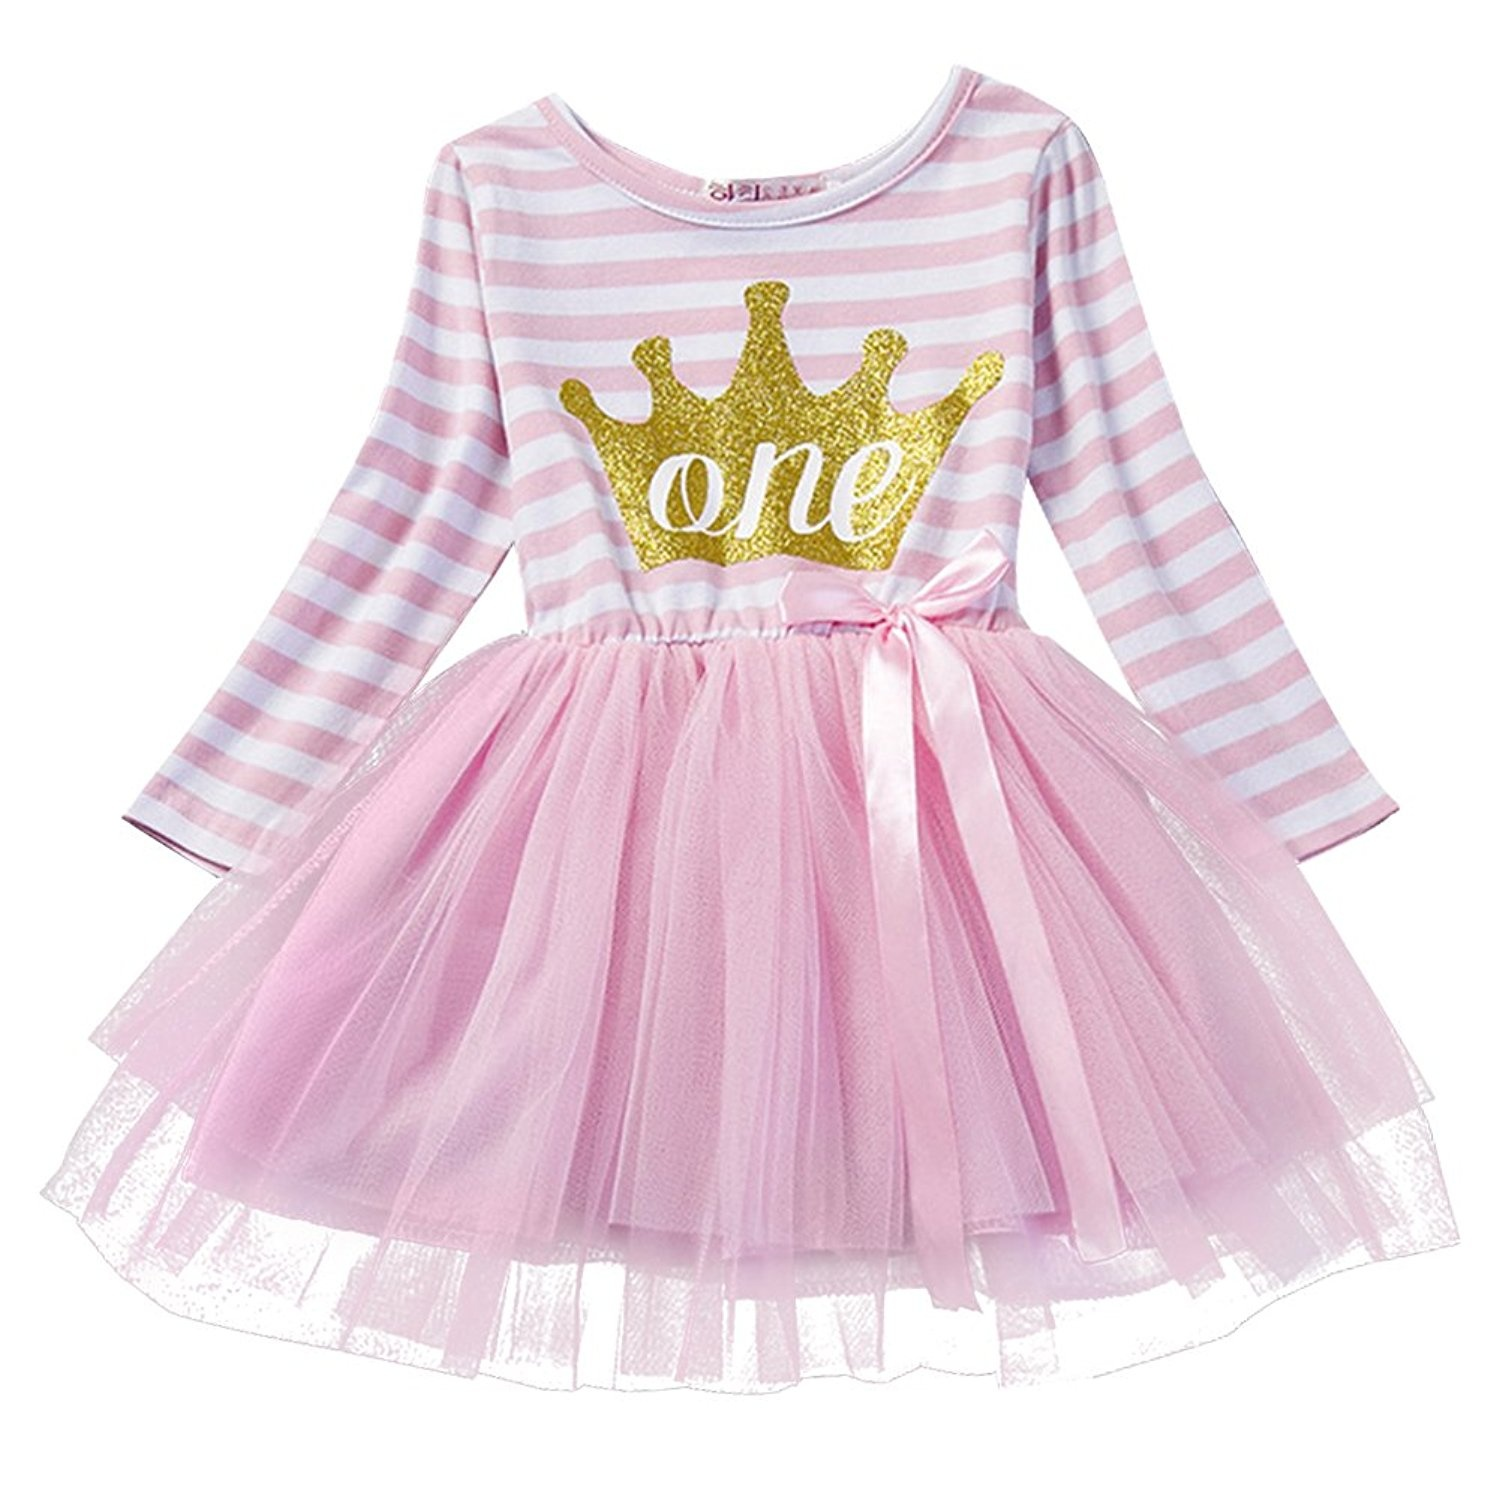 Baby Toddler Girl 1st 2nd 3rd Birthday Party Princess Pageant Casual Tulle Dress